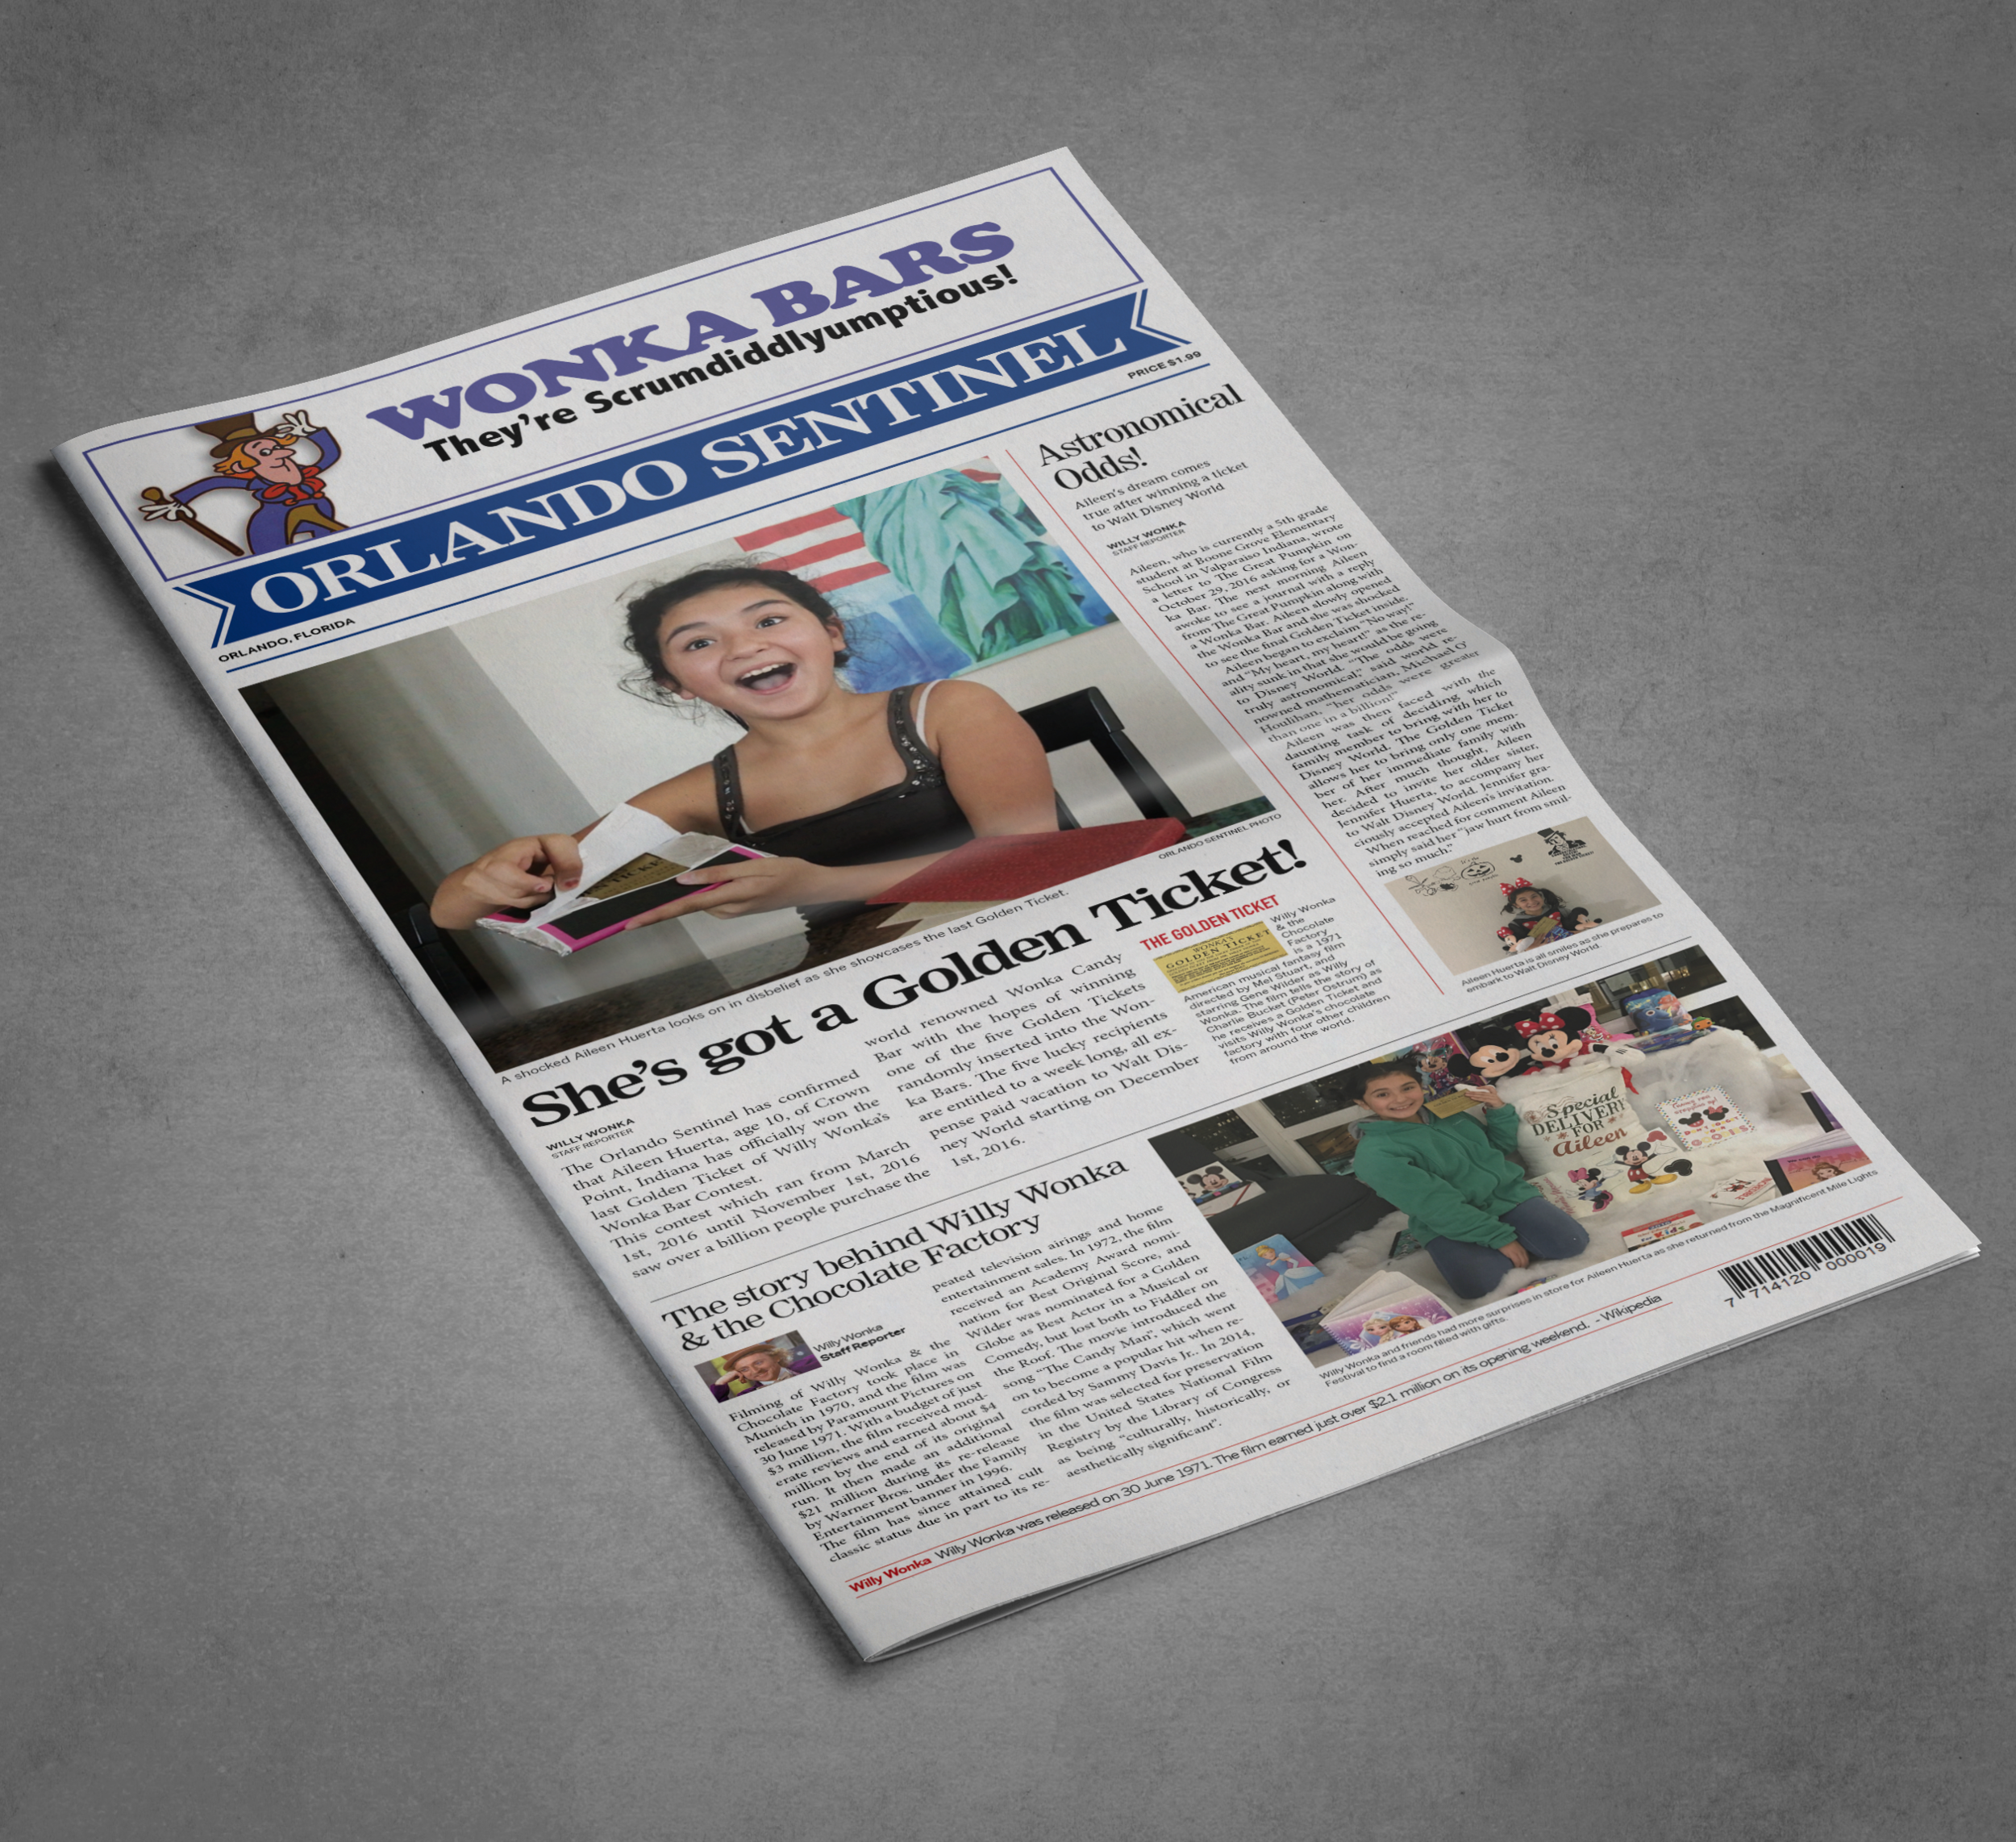 The Orlando Sentinel    This newspaper was designed for a girl who won the golden ticket - a trip to Walt Disney World in Orlando, Florida!